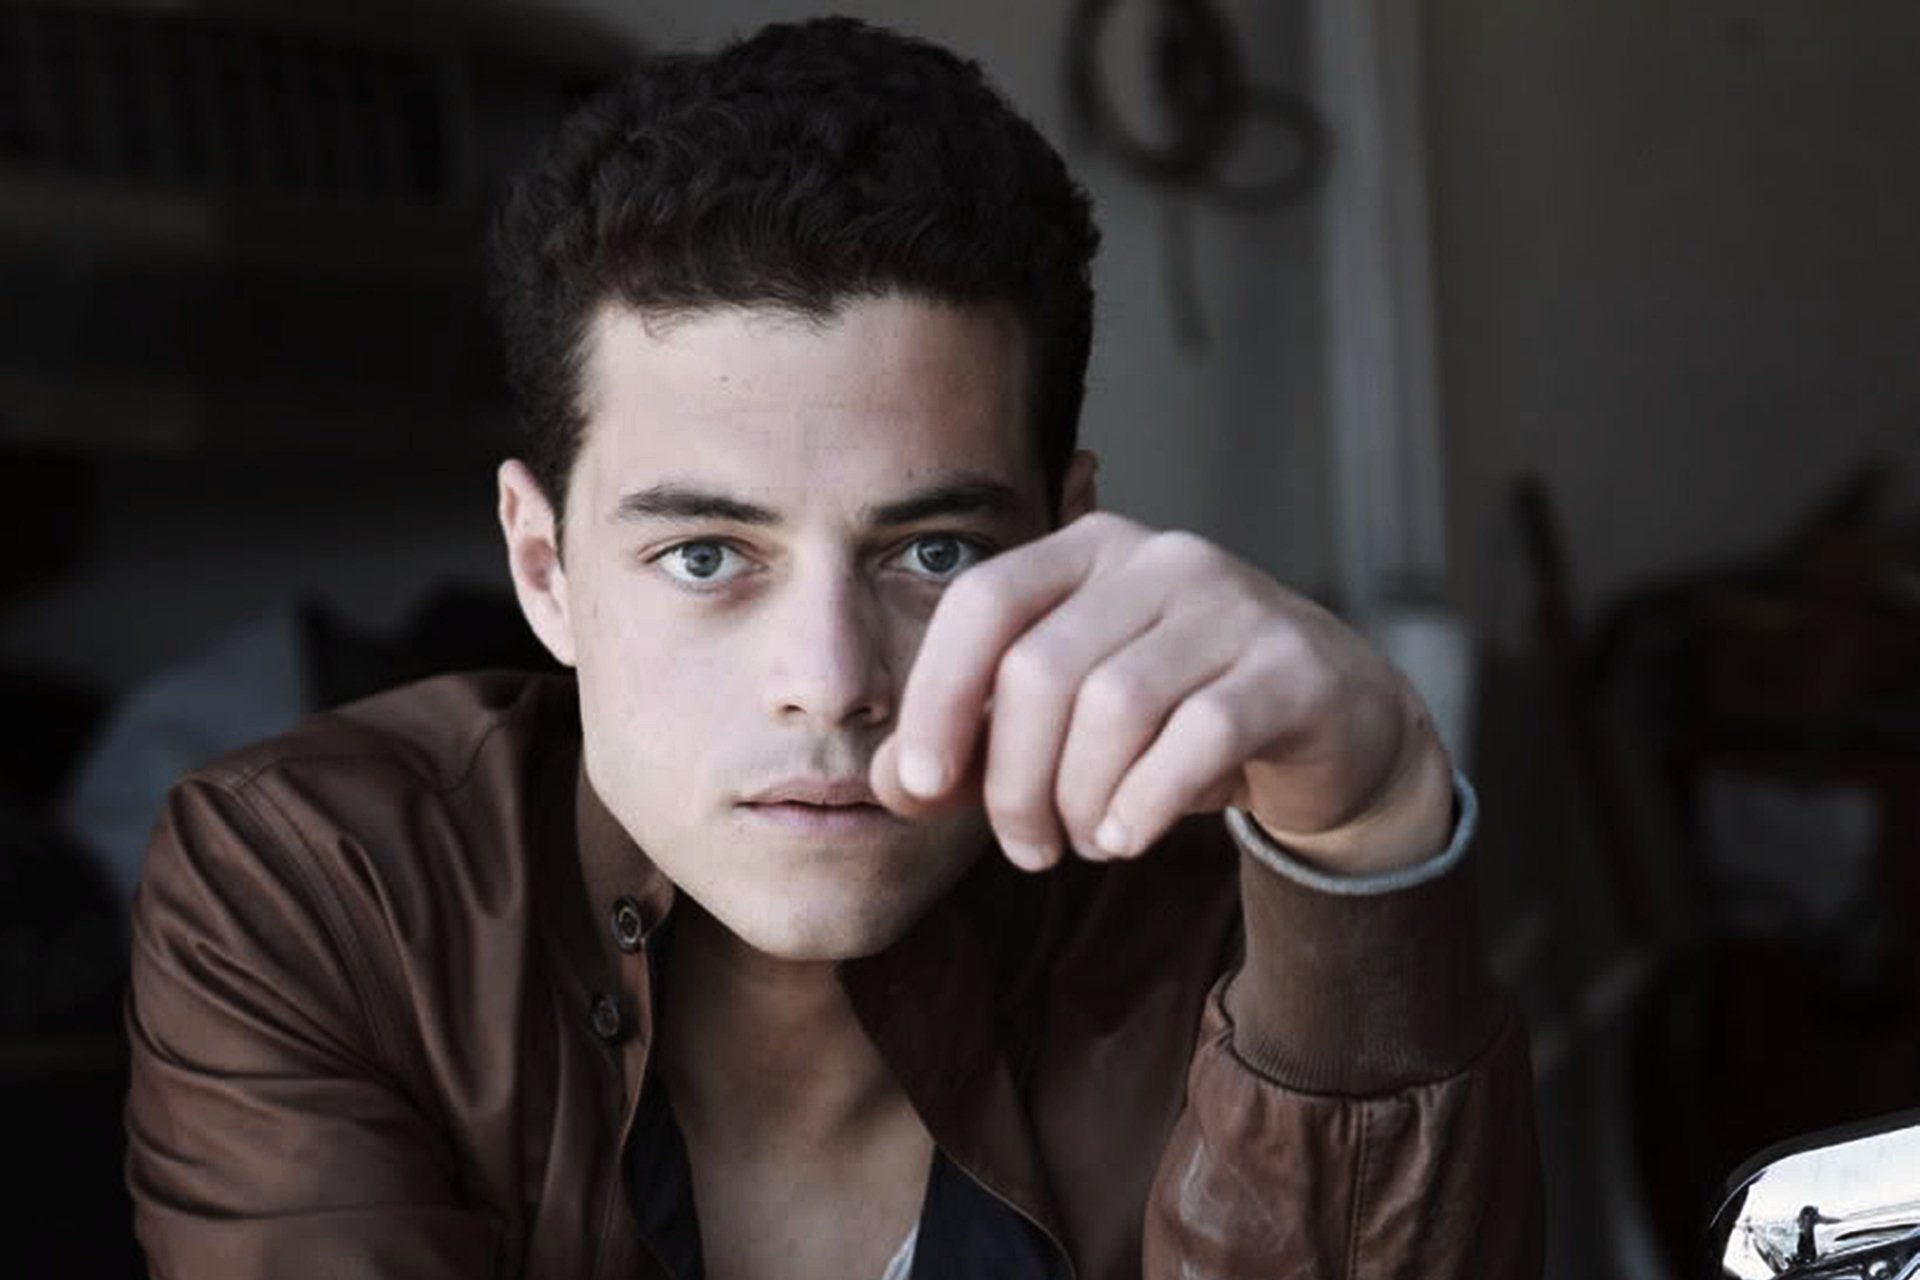 http://wallpapersdsc.net/wp-content/uploads/2016/03/Rami-Malek-Wallpaper.jpg